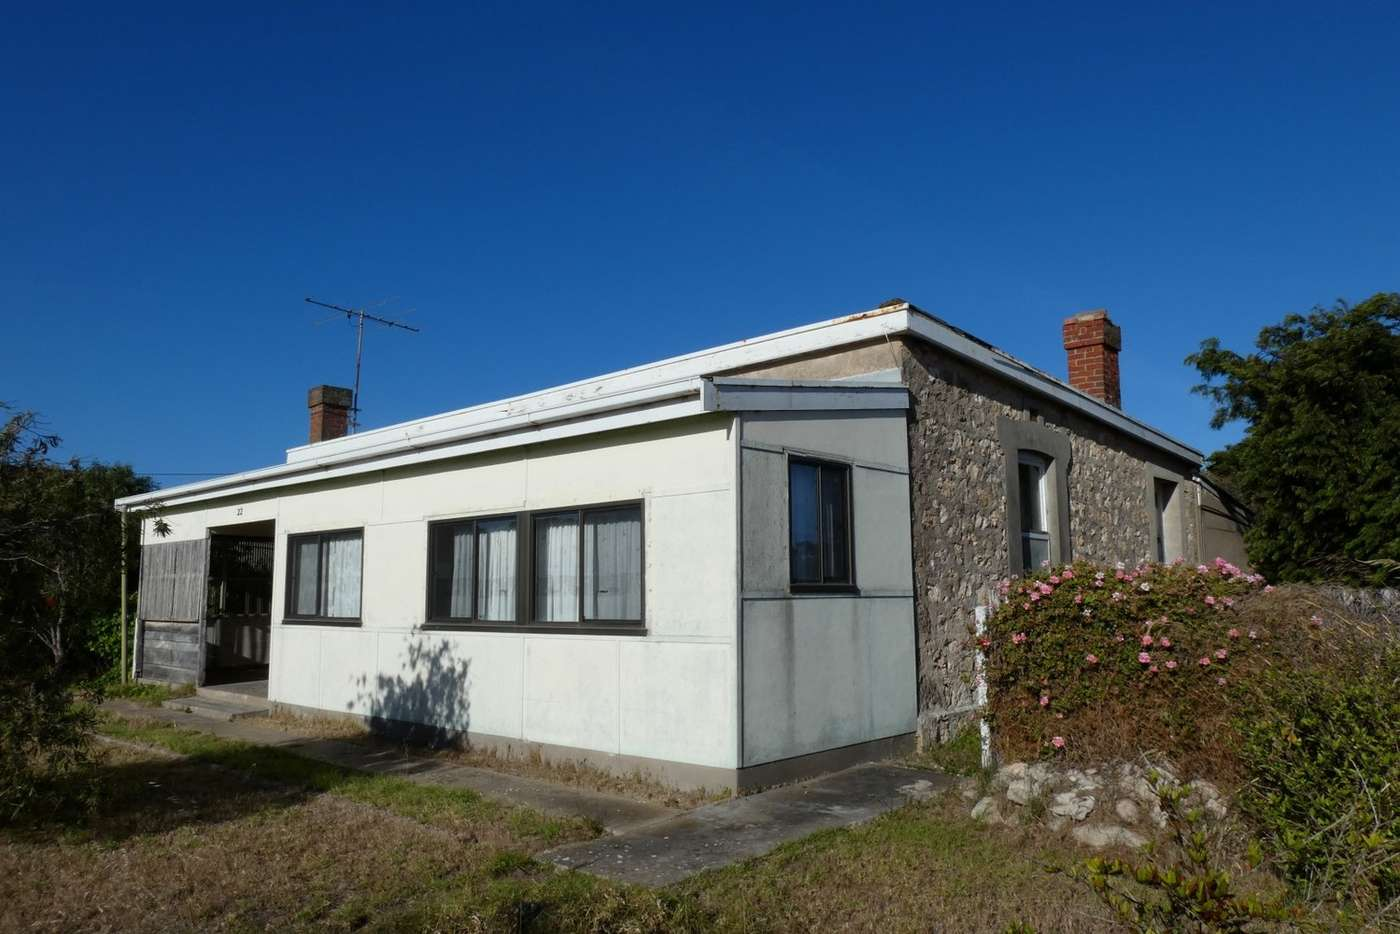 Main view of Homely house listing, 22 Anstey Terrace, Edithburgh SA 5583